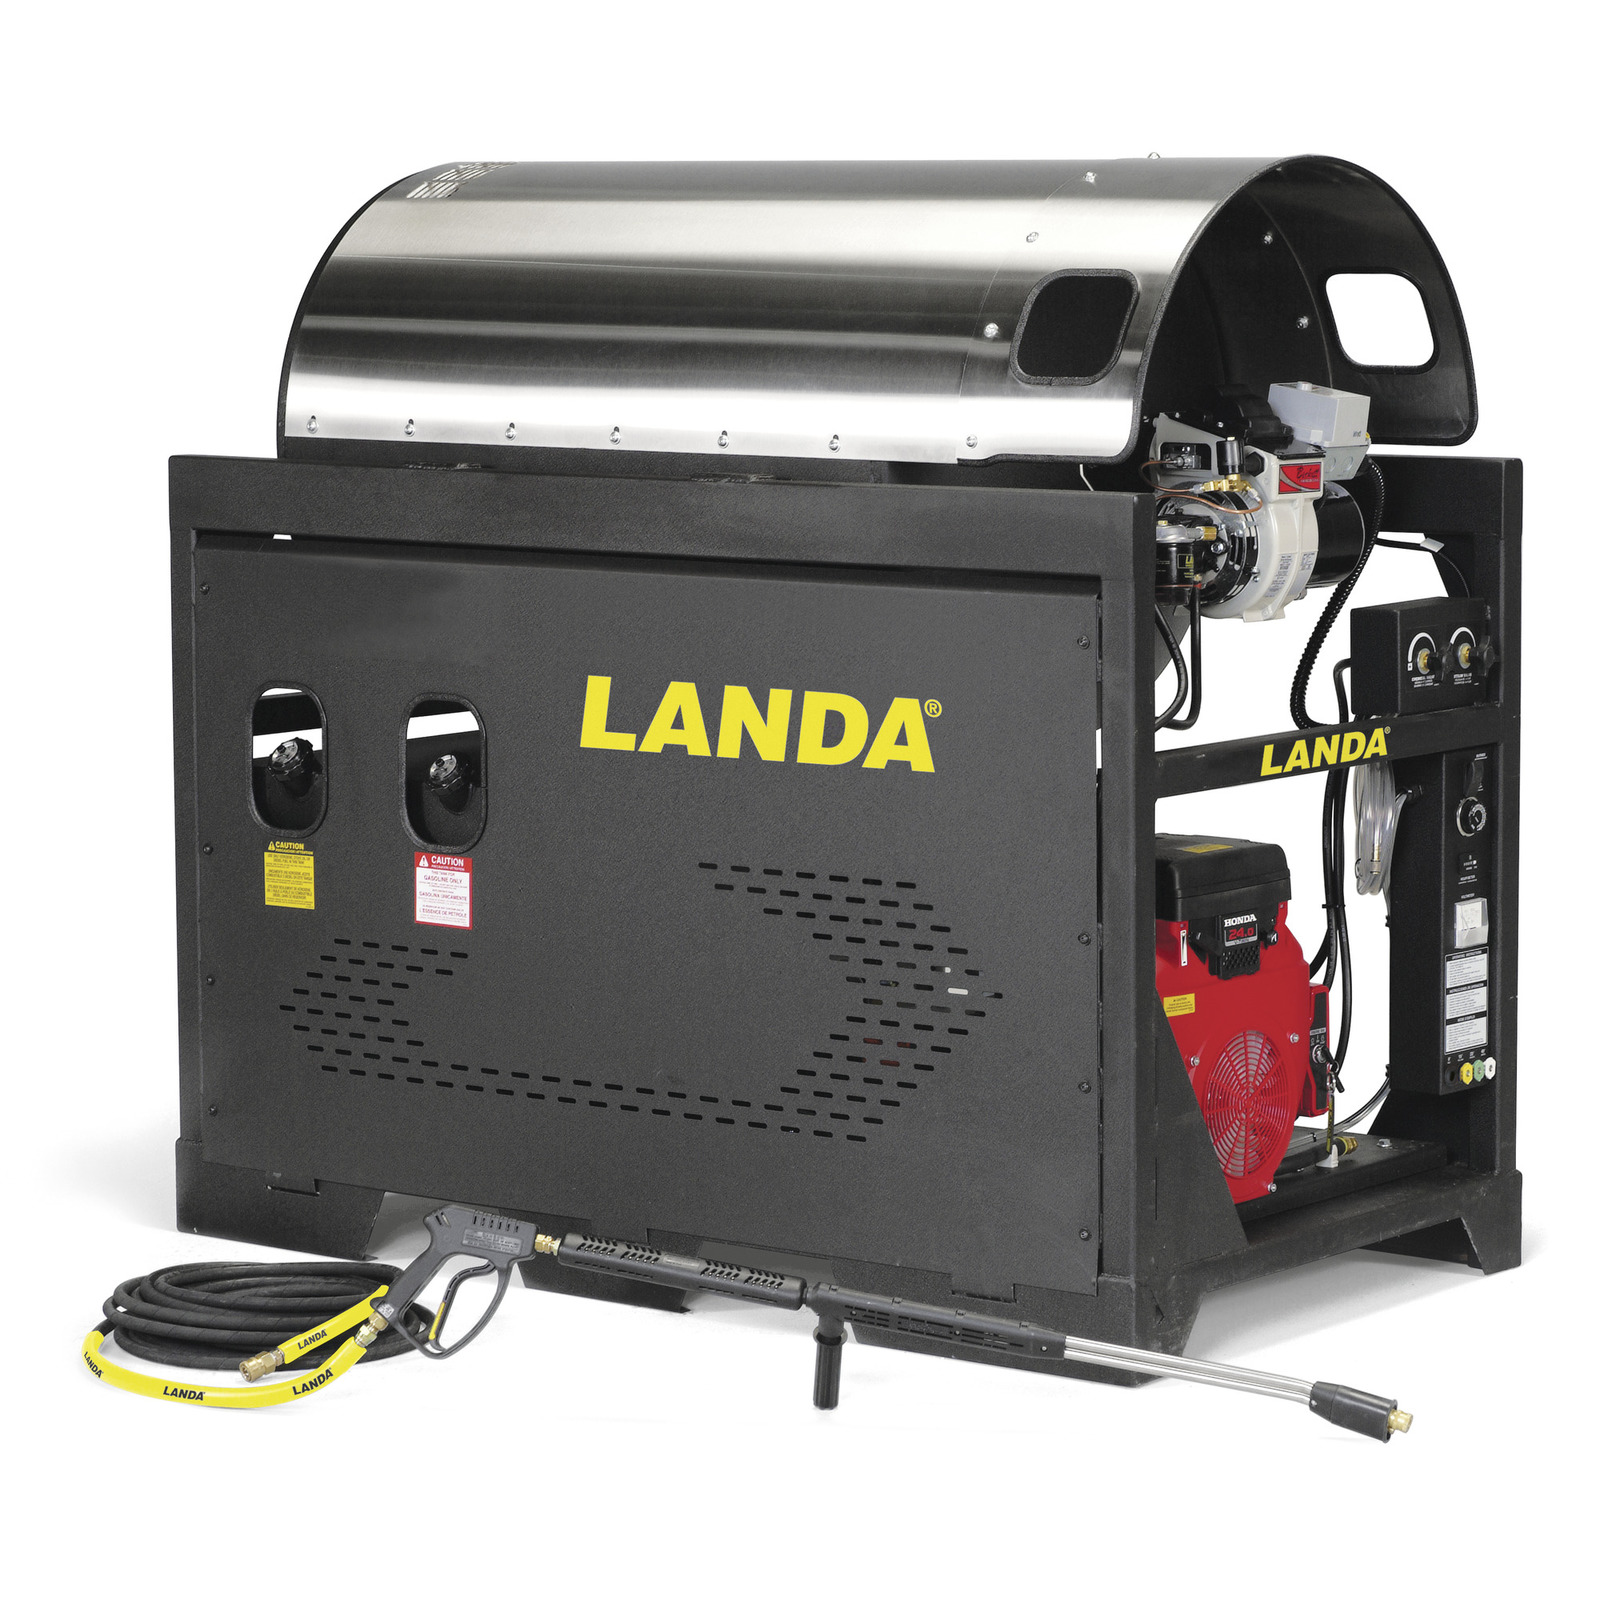 slx series hot water pressure washers gas diesel landa rh landa com